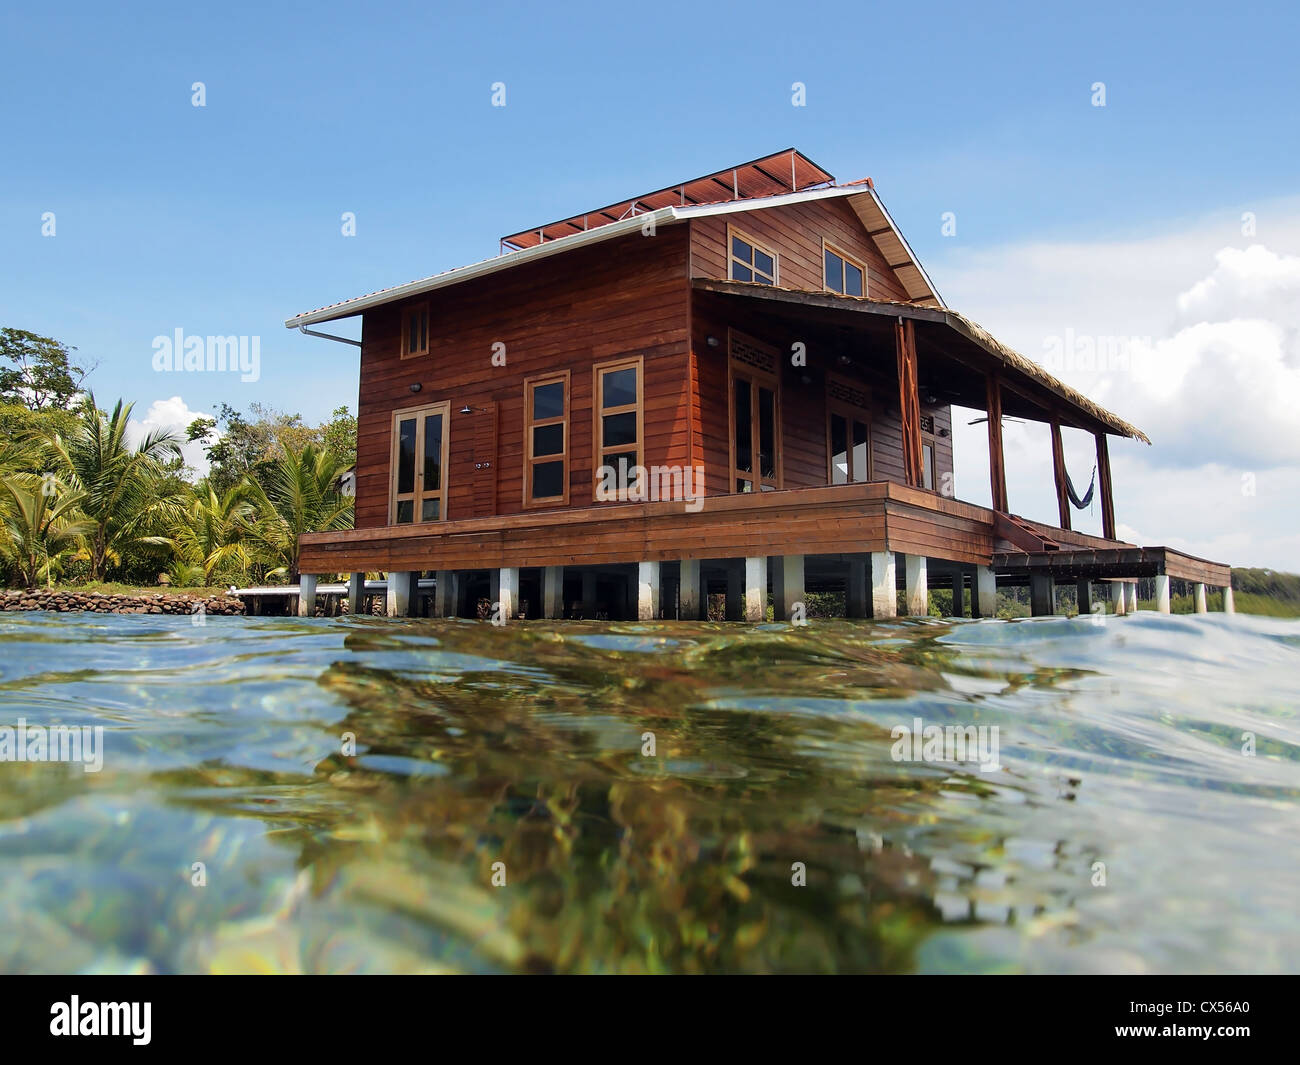 Tropical Stilt House Over The Caribbean Sea Stock Photo Royalty Free Image 50516536 Alamy